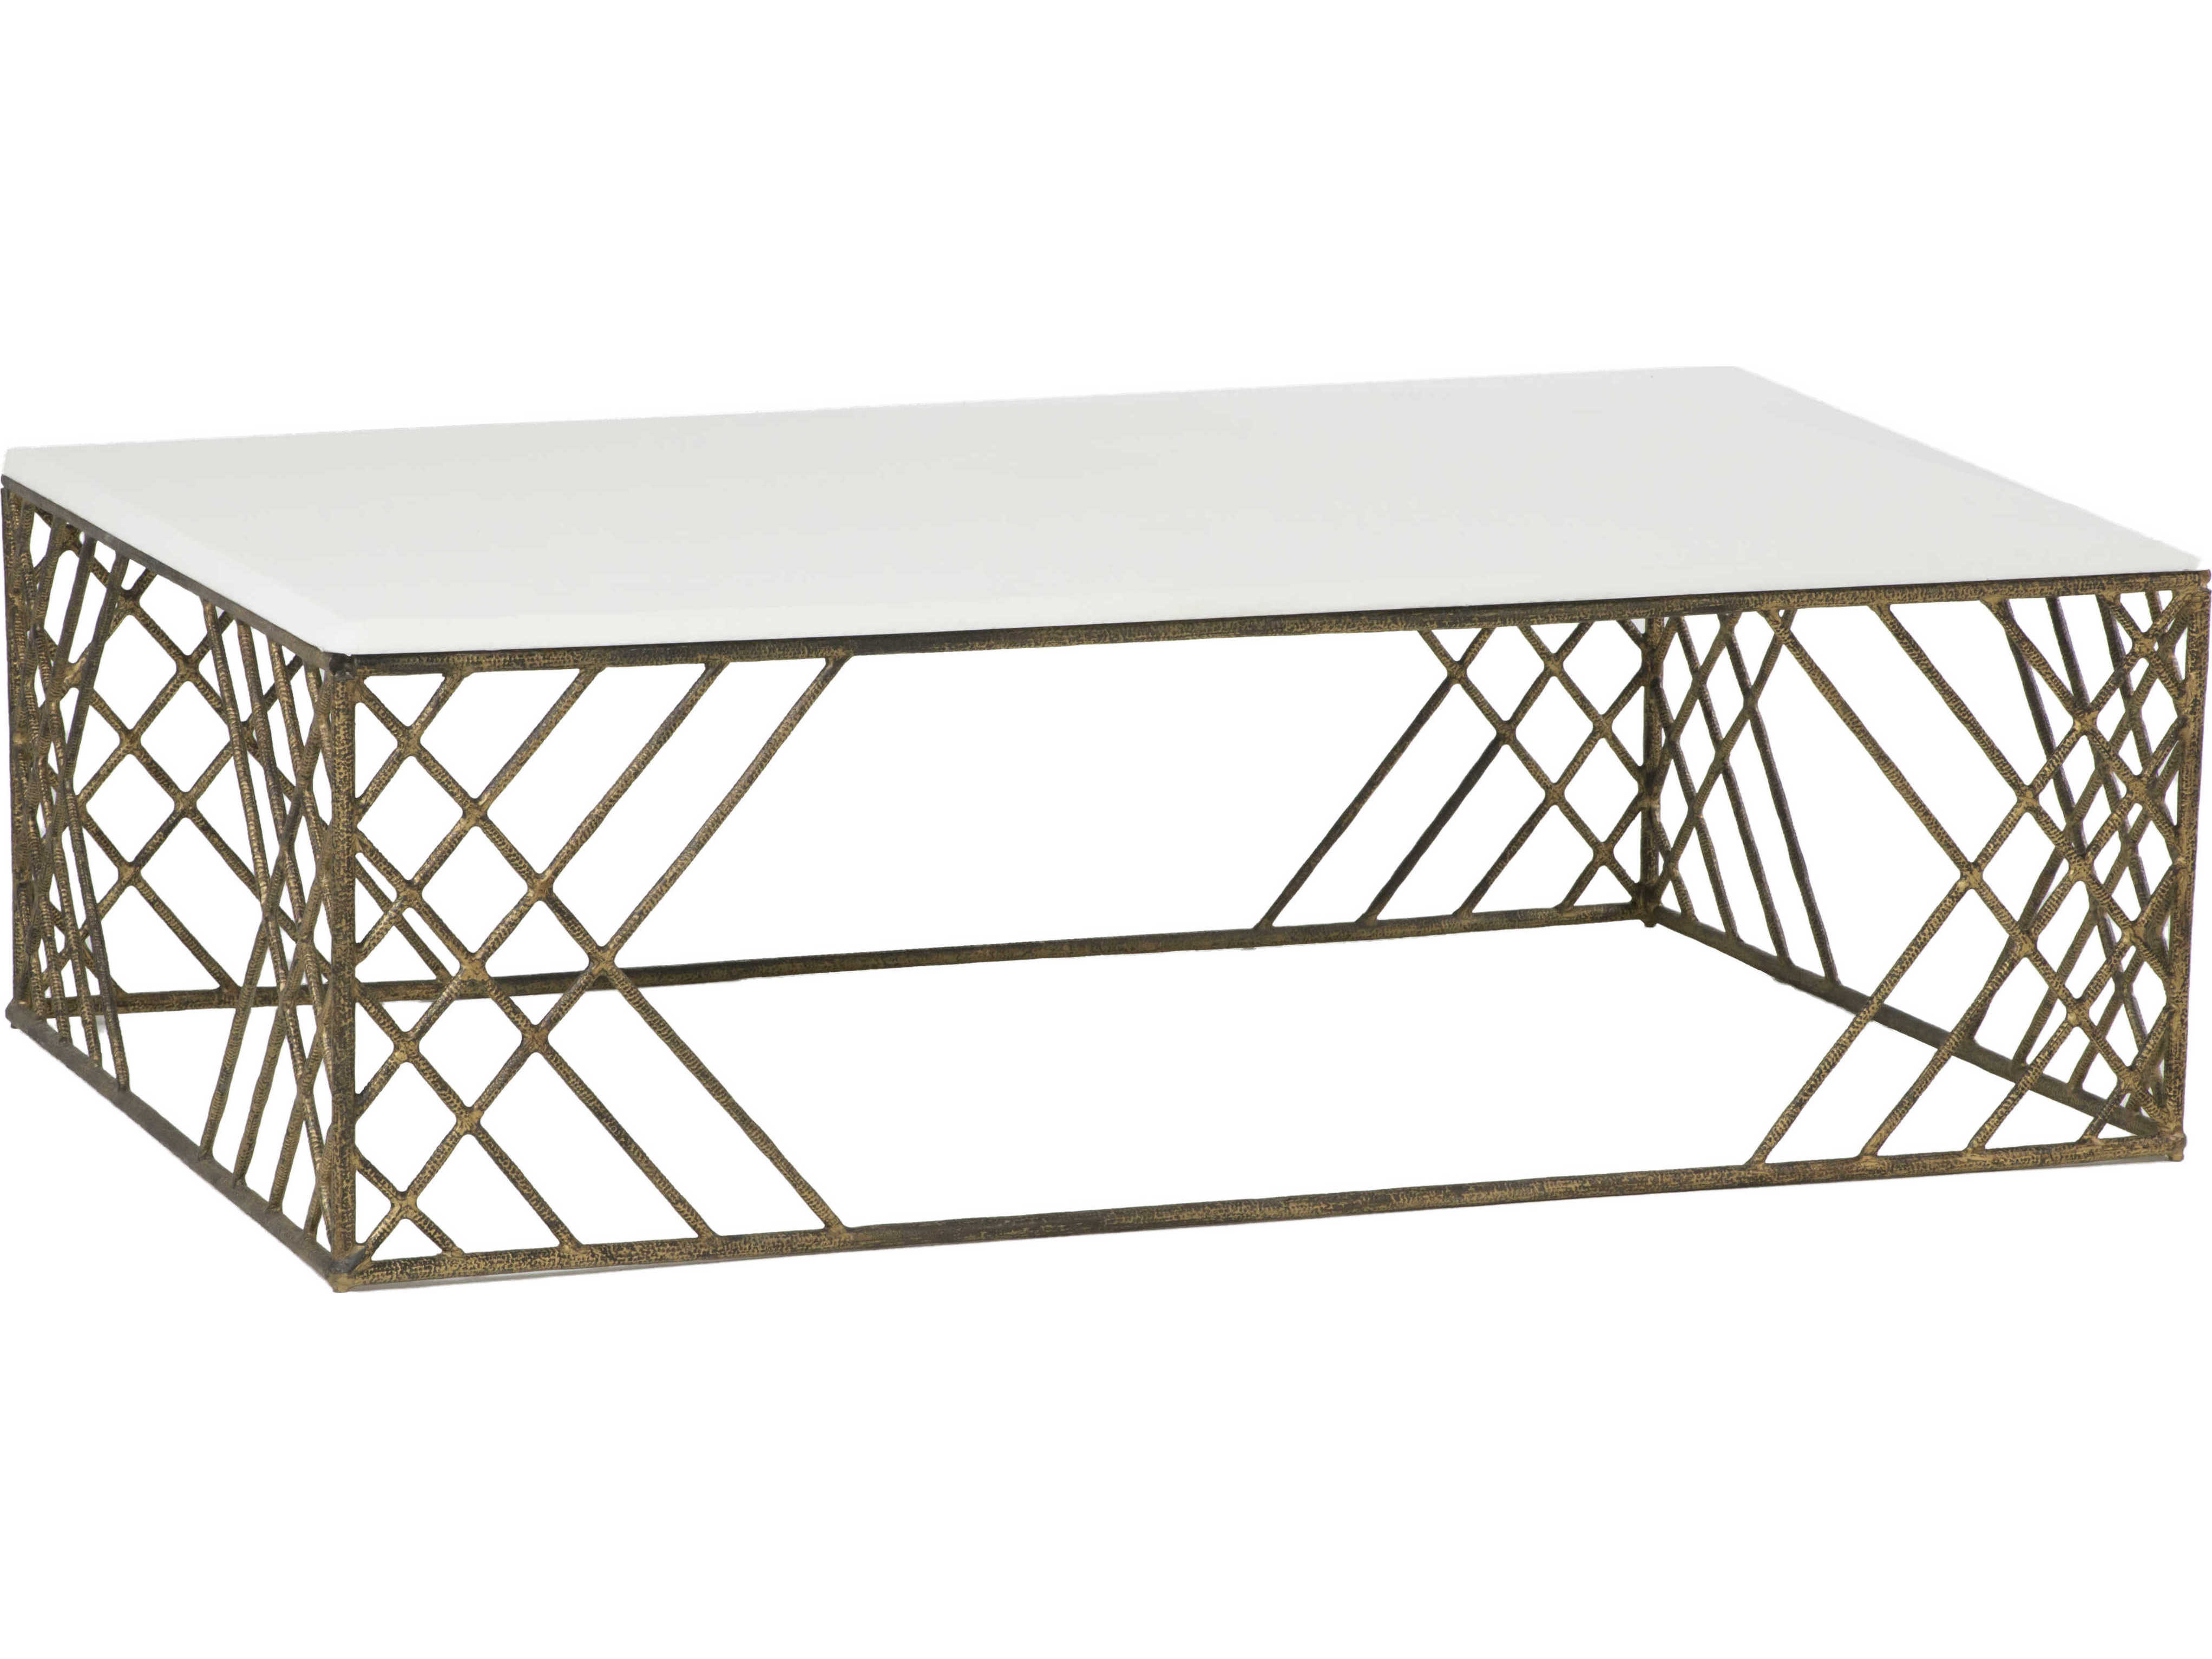 Gabby Cassidy White Seagrass Antique Gold 54 W X 36 D Rectangular Coffee Table Gasch153635